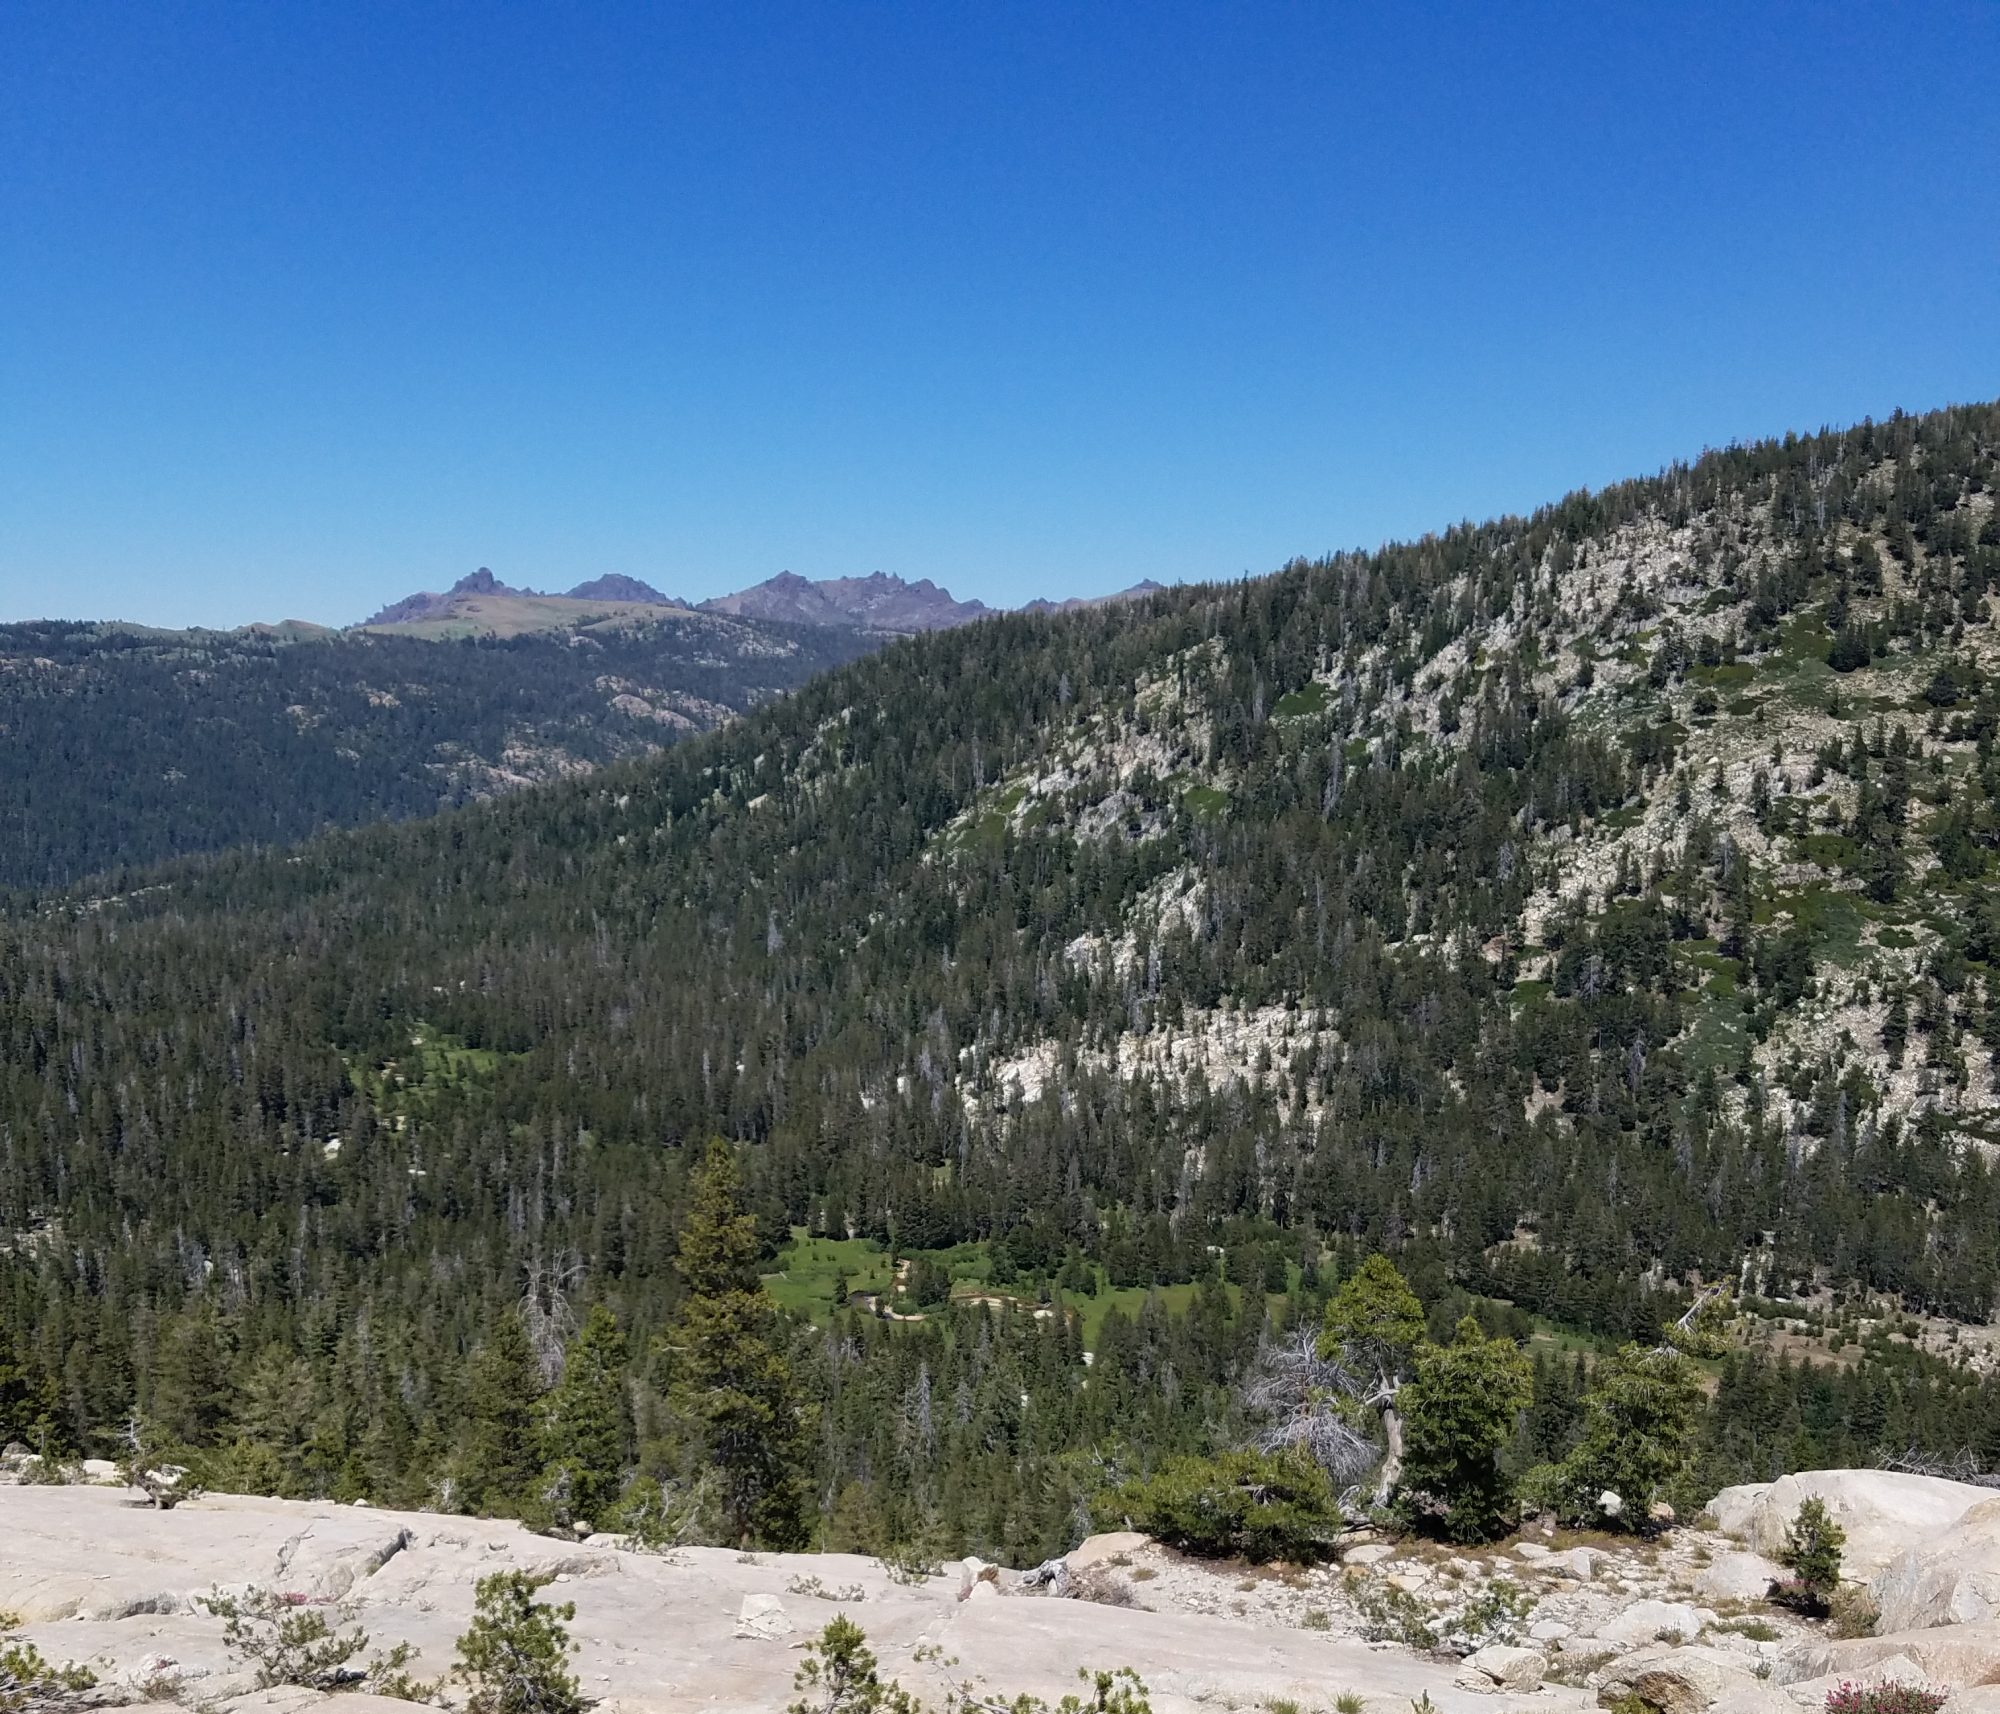 Overlook above Pacific Valley near Pacific Summit in the Sierra Nevada, June 2016